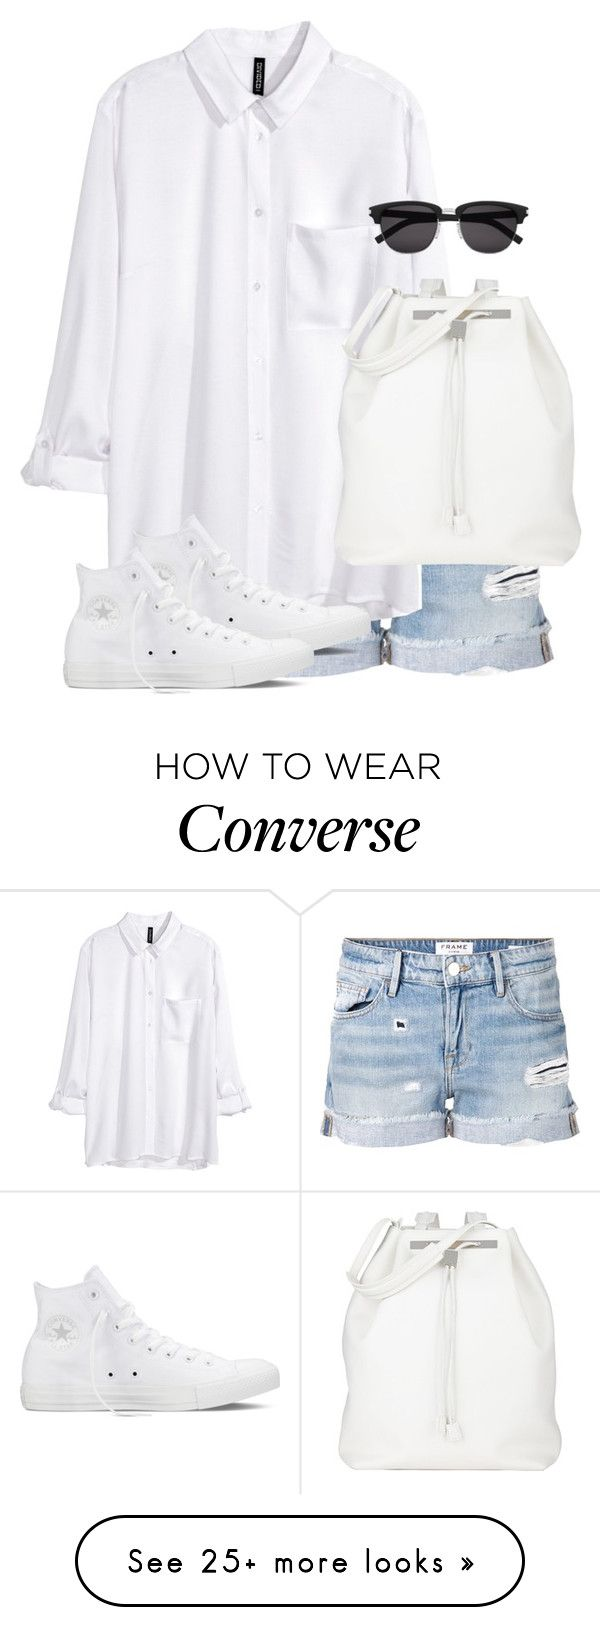 """Untitled #9815"" by alexsrogers on Polyvore featuring мода, Frame Denim, H&M, Converse, Yves Saint Laurent и The Row"